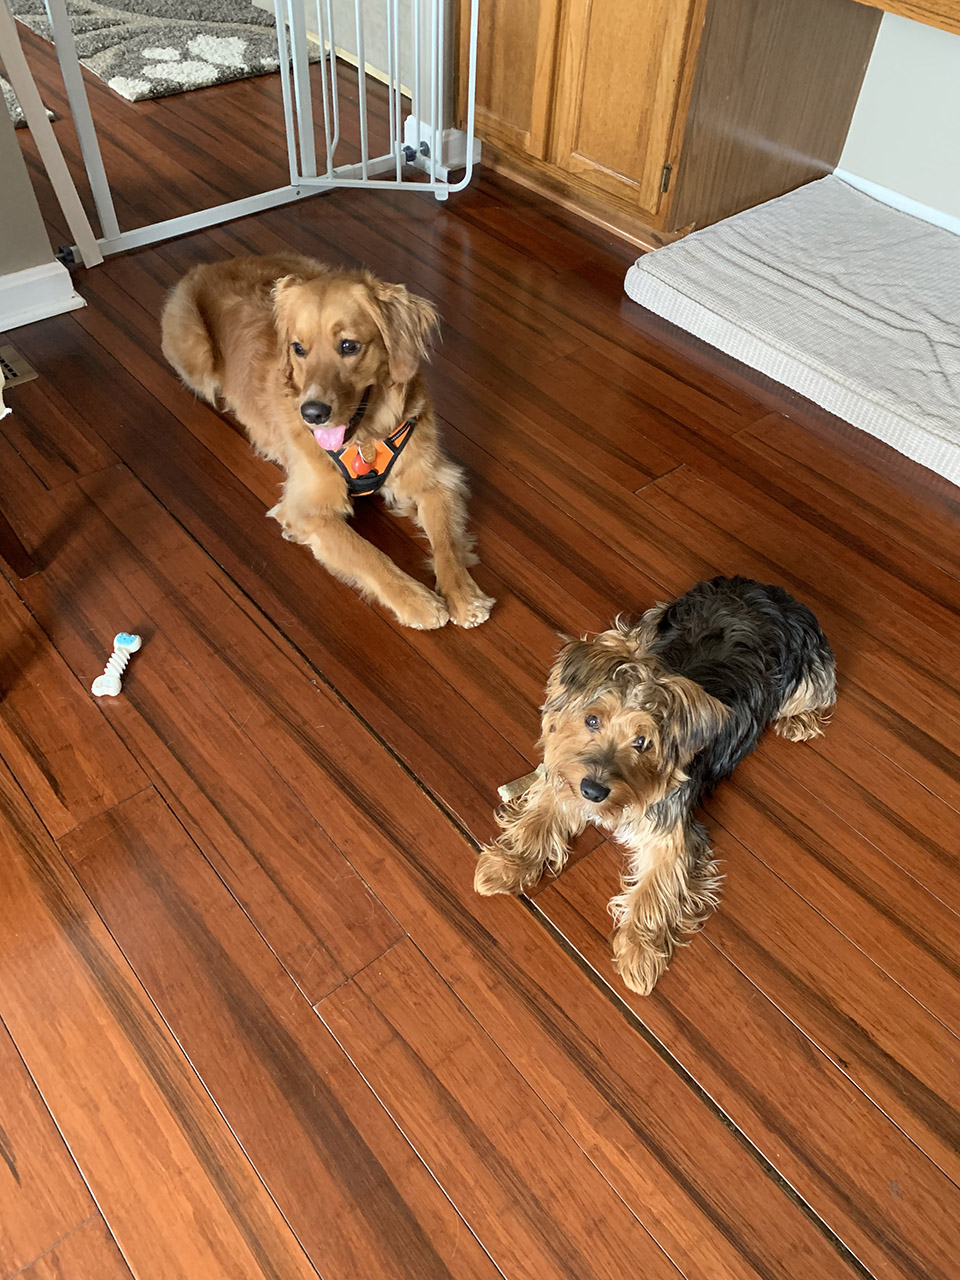 Two dogs laying down on a home wooden floor.